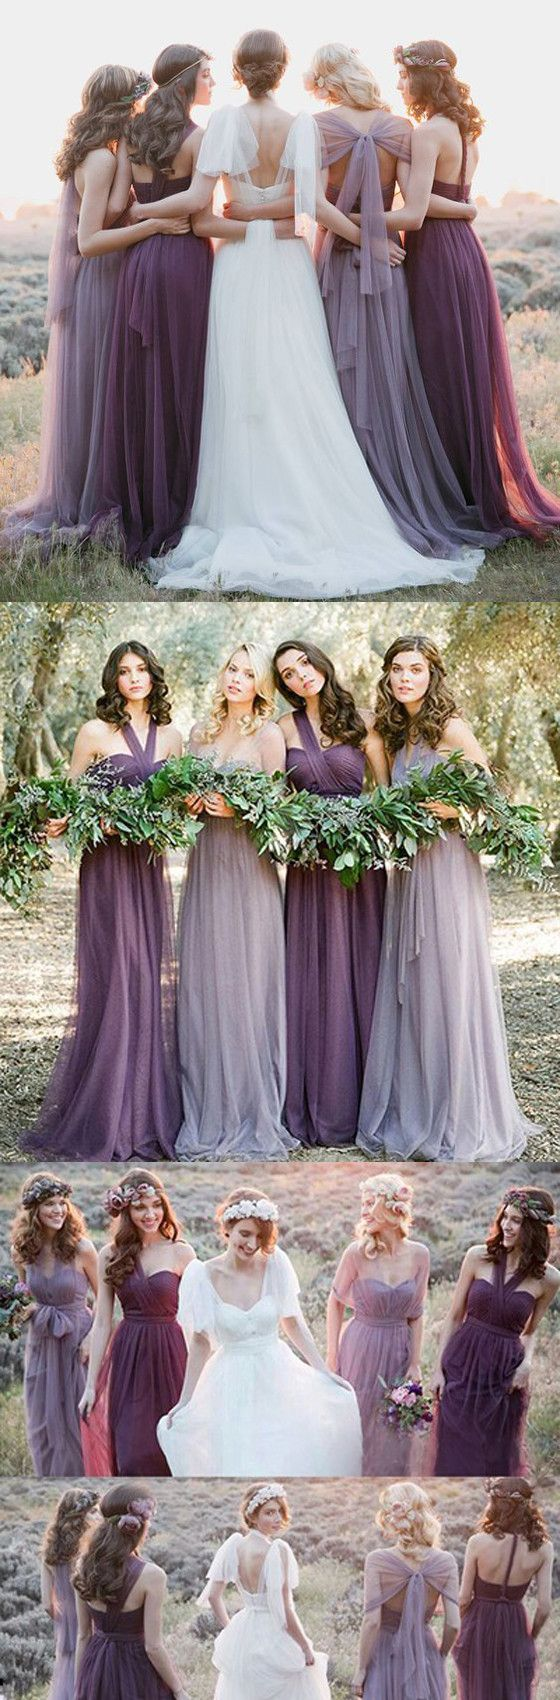 Mismatched convertible bridesmaid dresses lavender bridesmaid mismatched convertible bridesmaid dresses lavender bridesmaid convertible and lavender ombrellifo Image collections